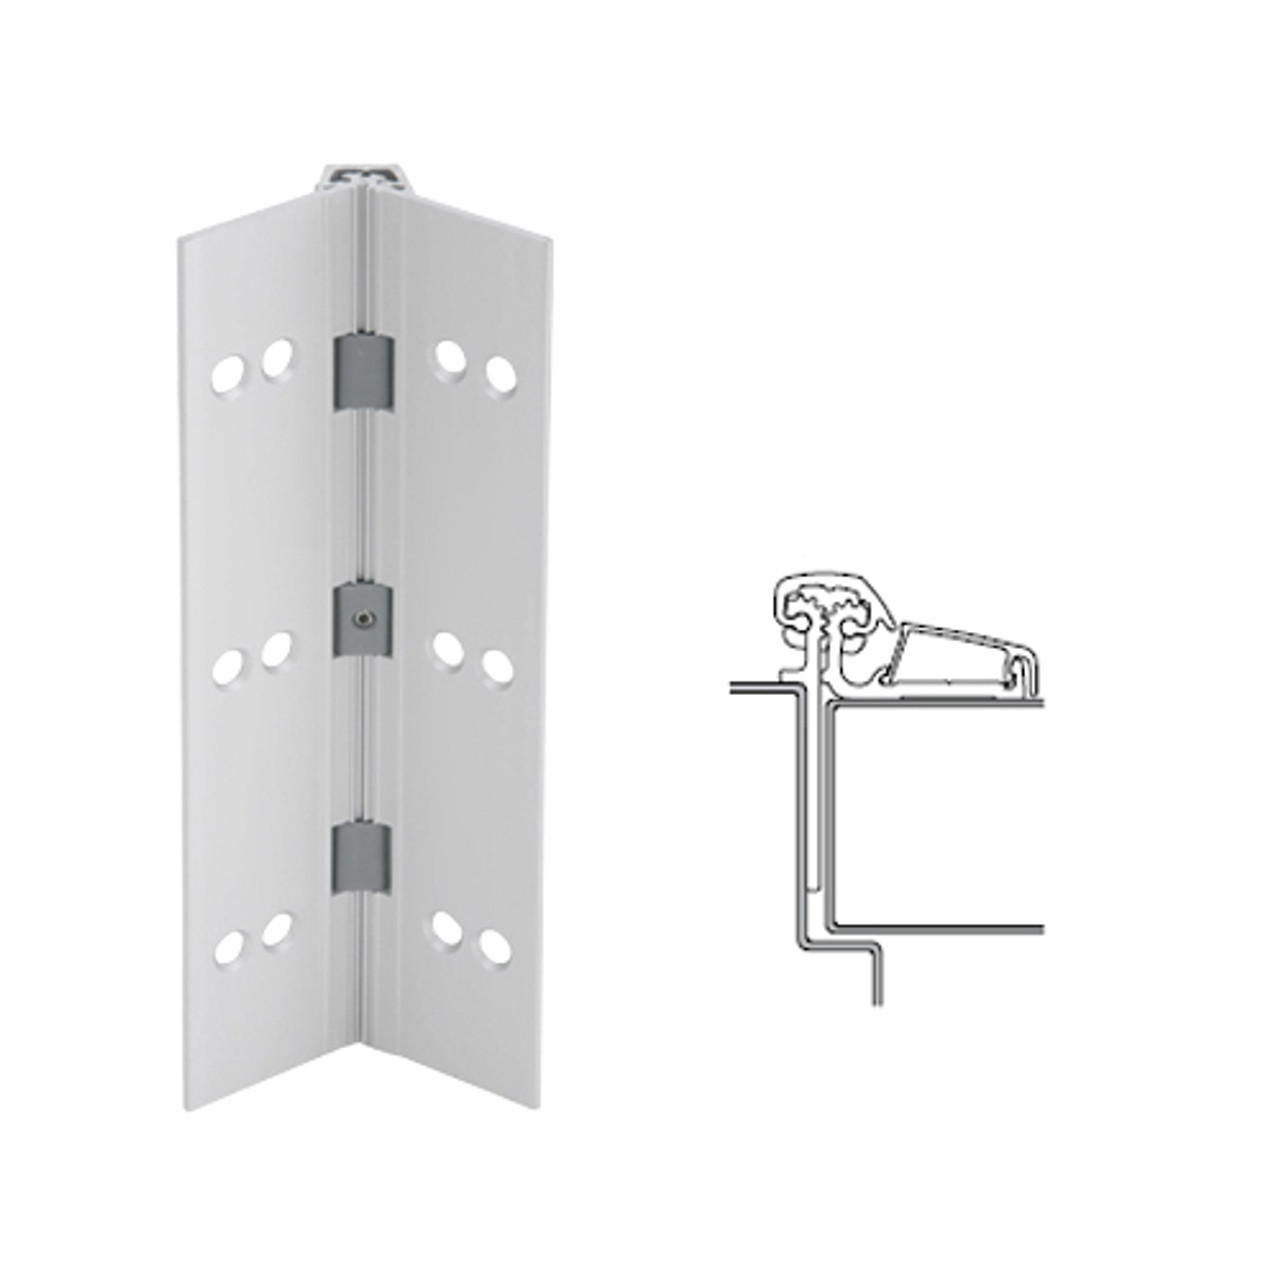 053XY-US28-83-TFWD IVES Adjustable Half Surface Continuous Geared Hinges with Thread Forming Screws in Satin Aluminum